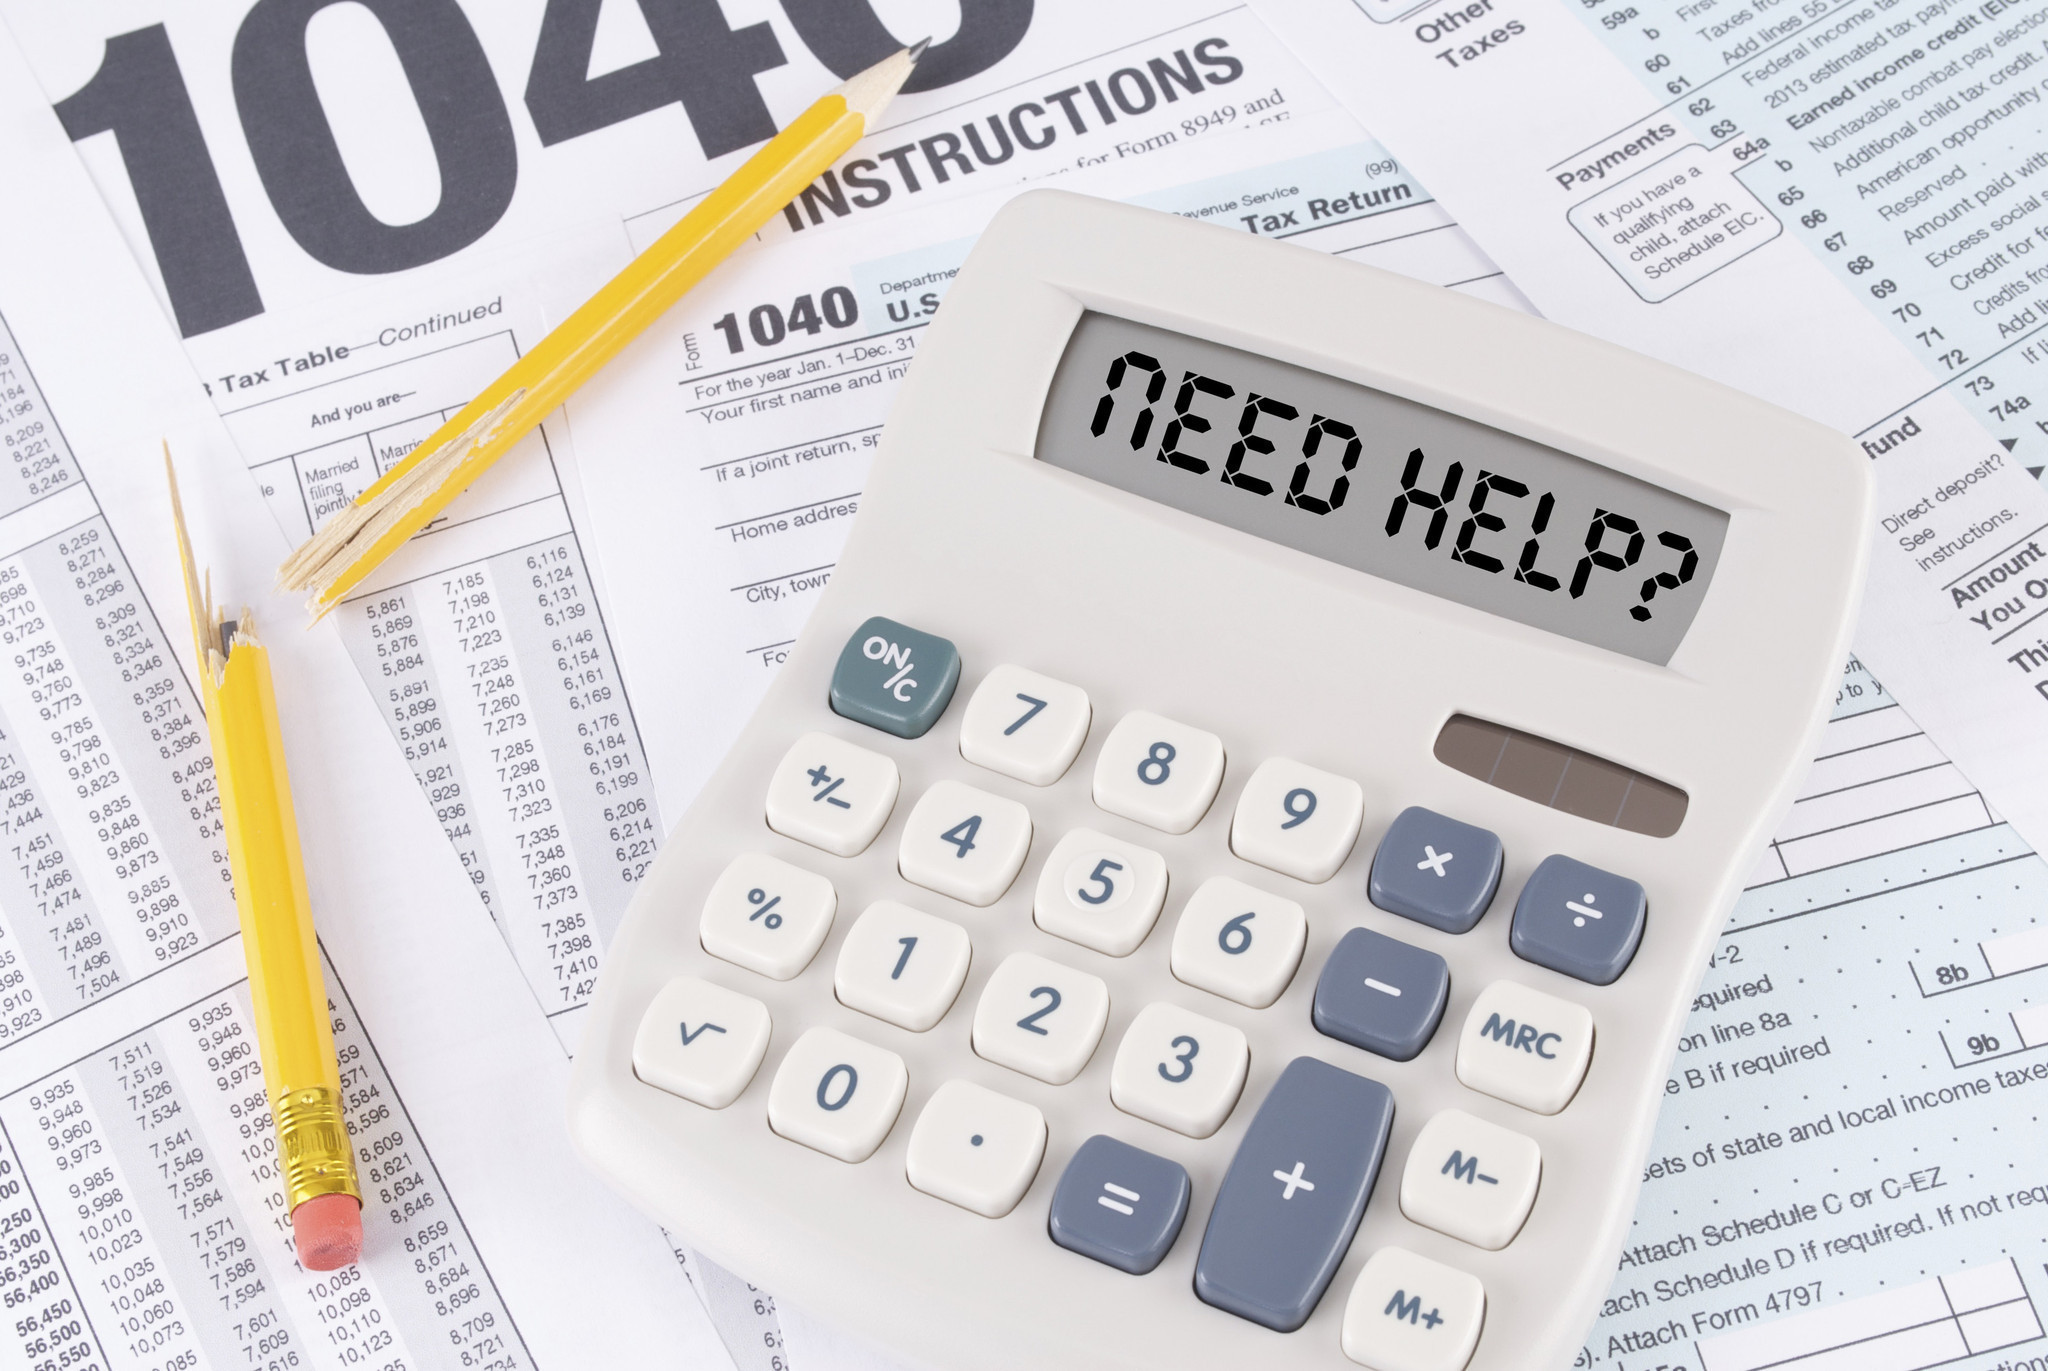 Filing Your Federal Taxes Find Out How To File Your Federal Taxes, Get An  Extension, And More